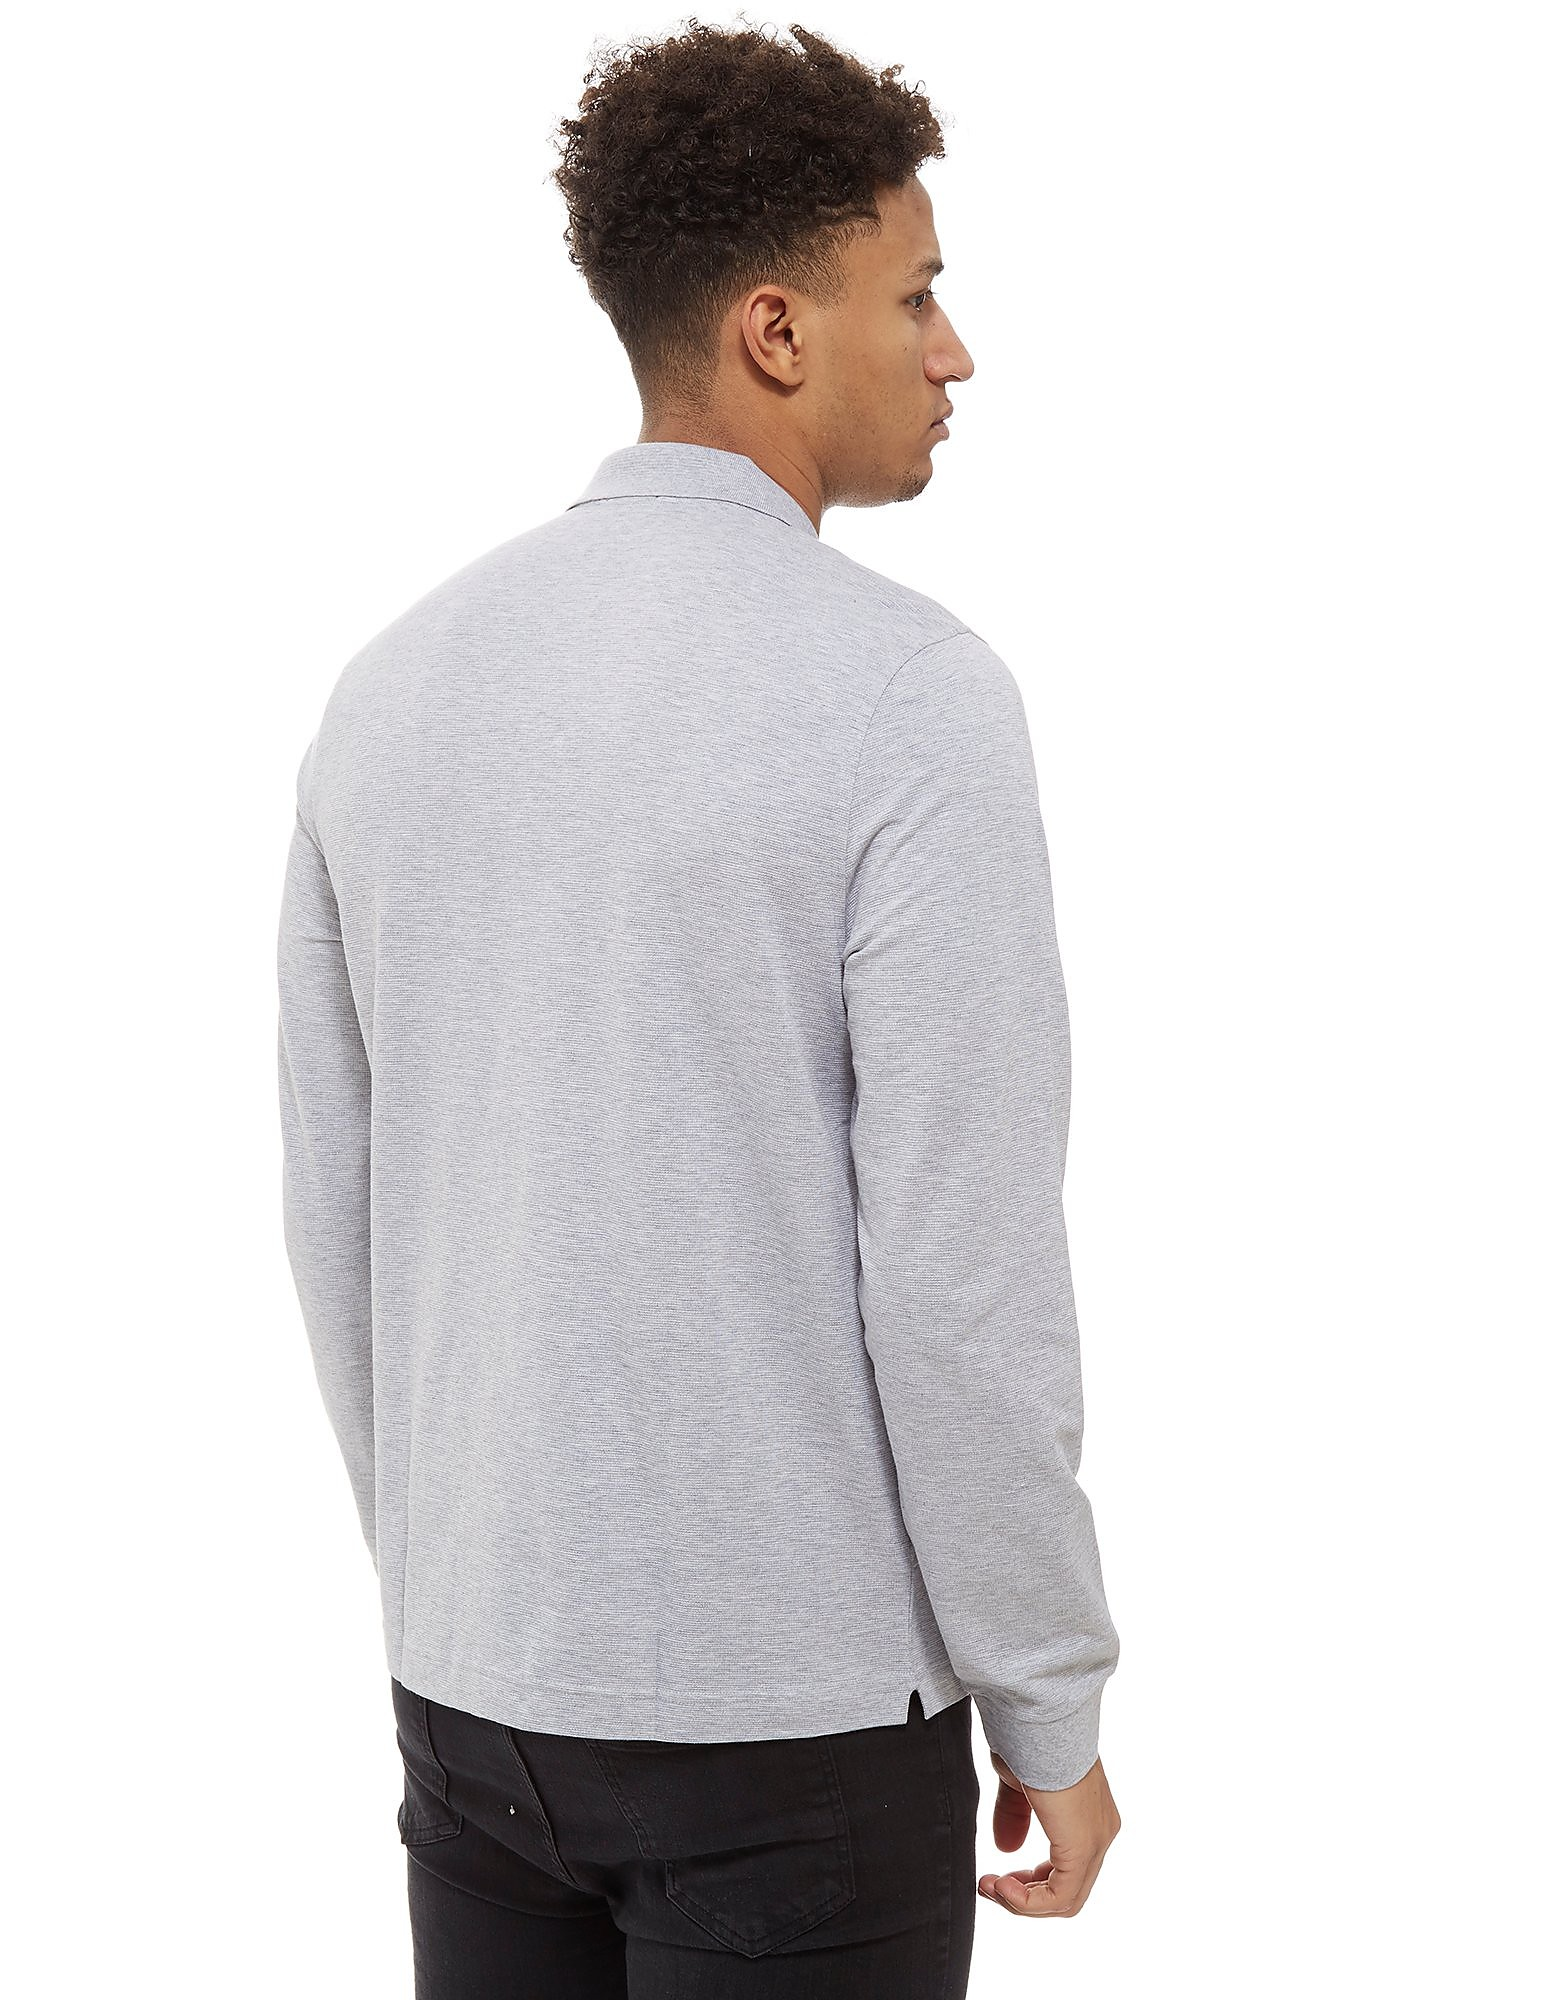 Lacoste Long Sleeve Alligator